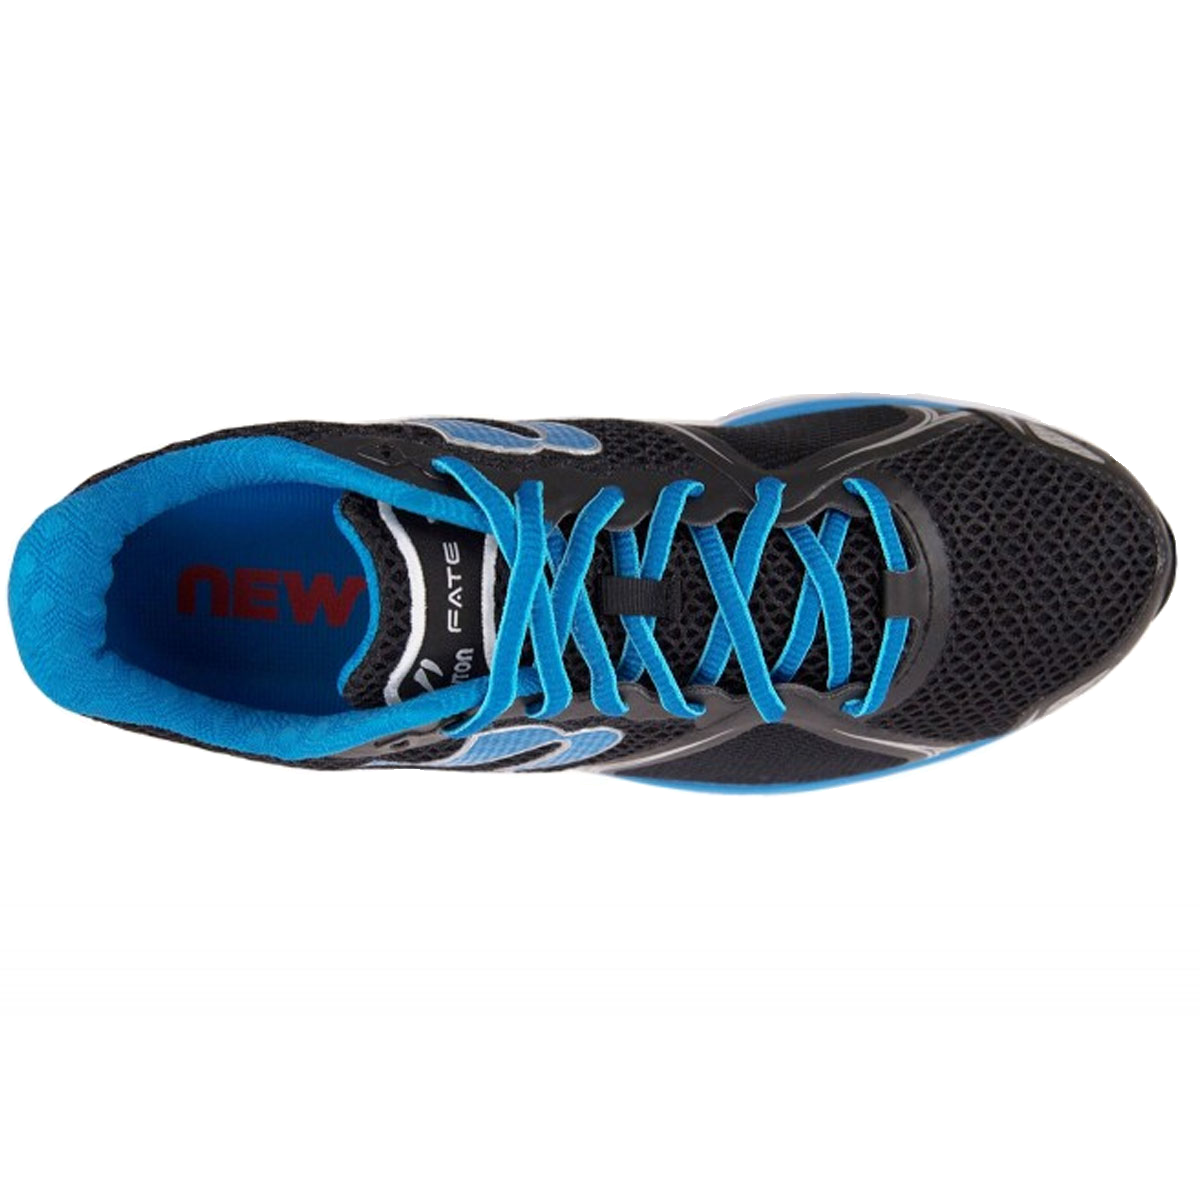 NuevoTON RUNNING FATE elite III 39.5-49 NUEVO motion kismet gravity distance elite FATE 7 fb15a9